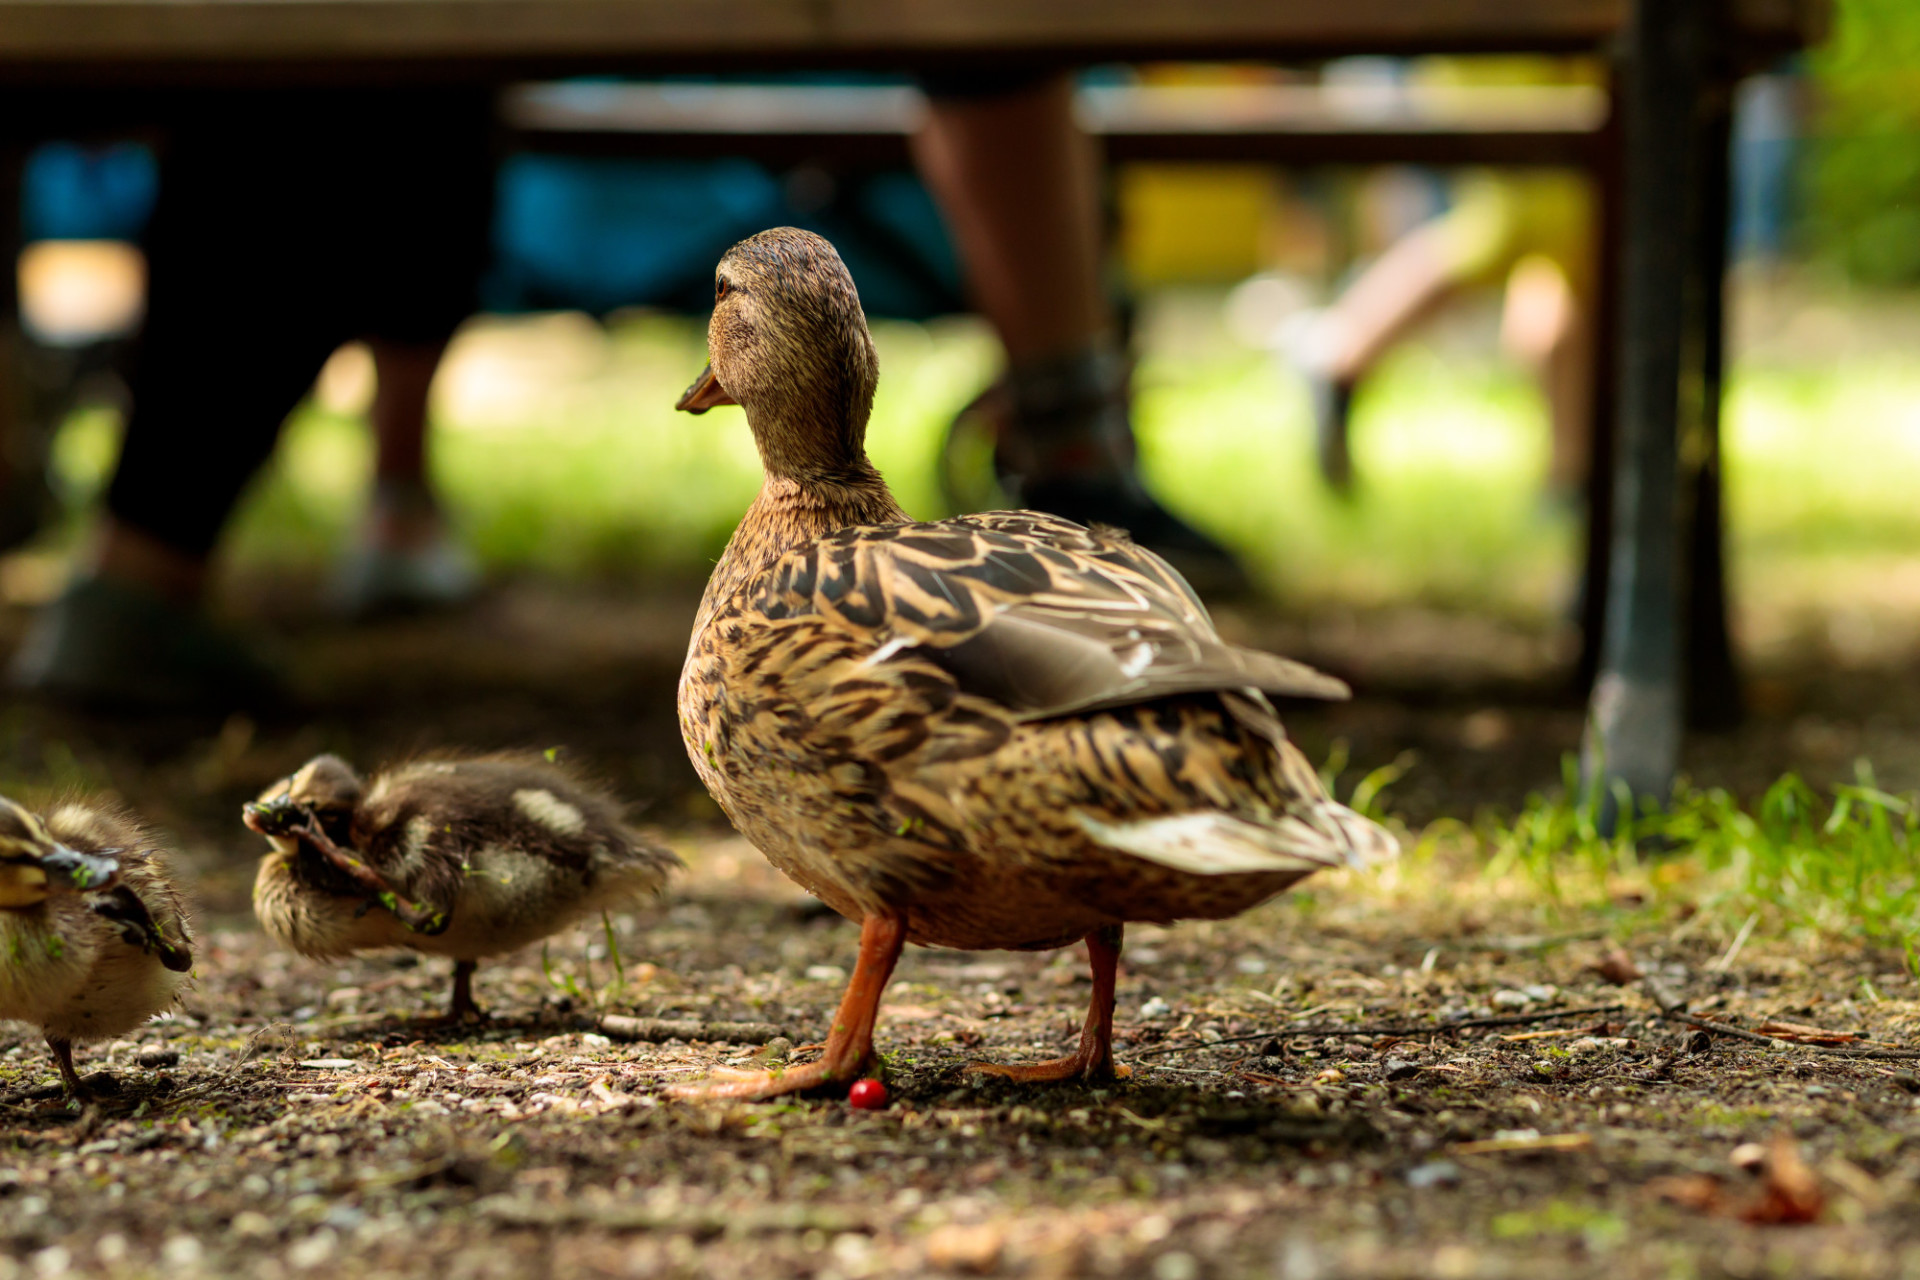 Mother duck guards her chicks